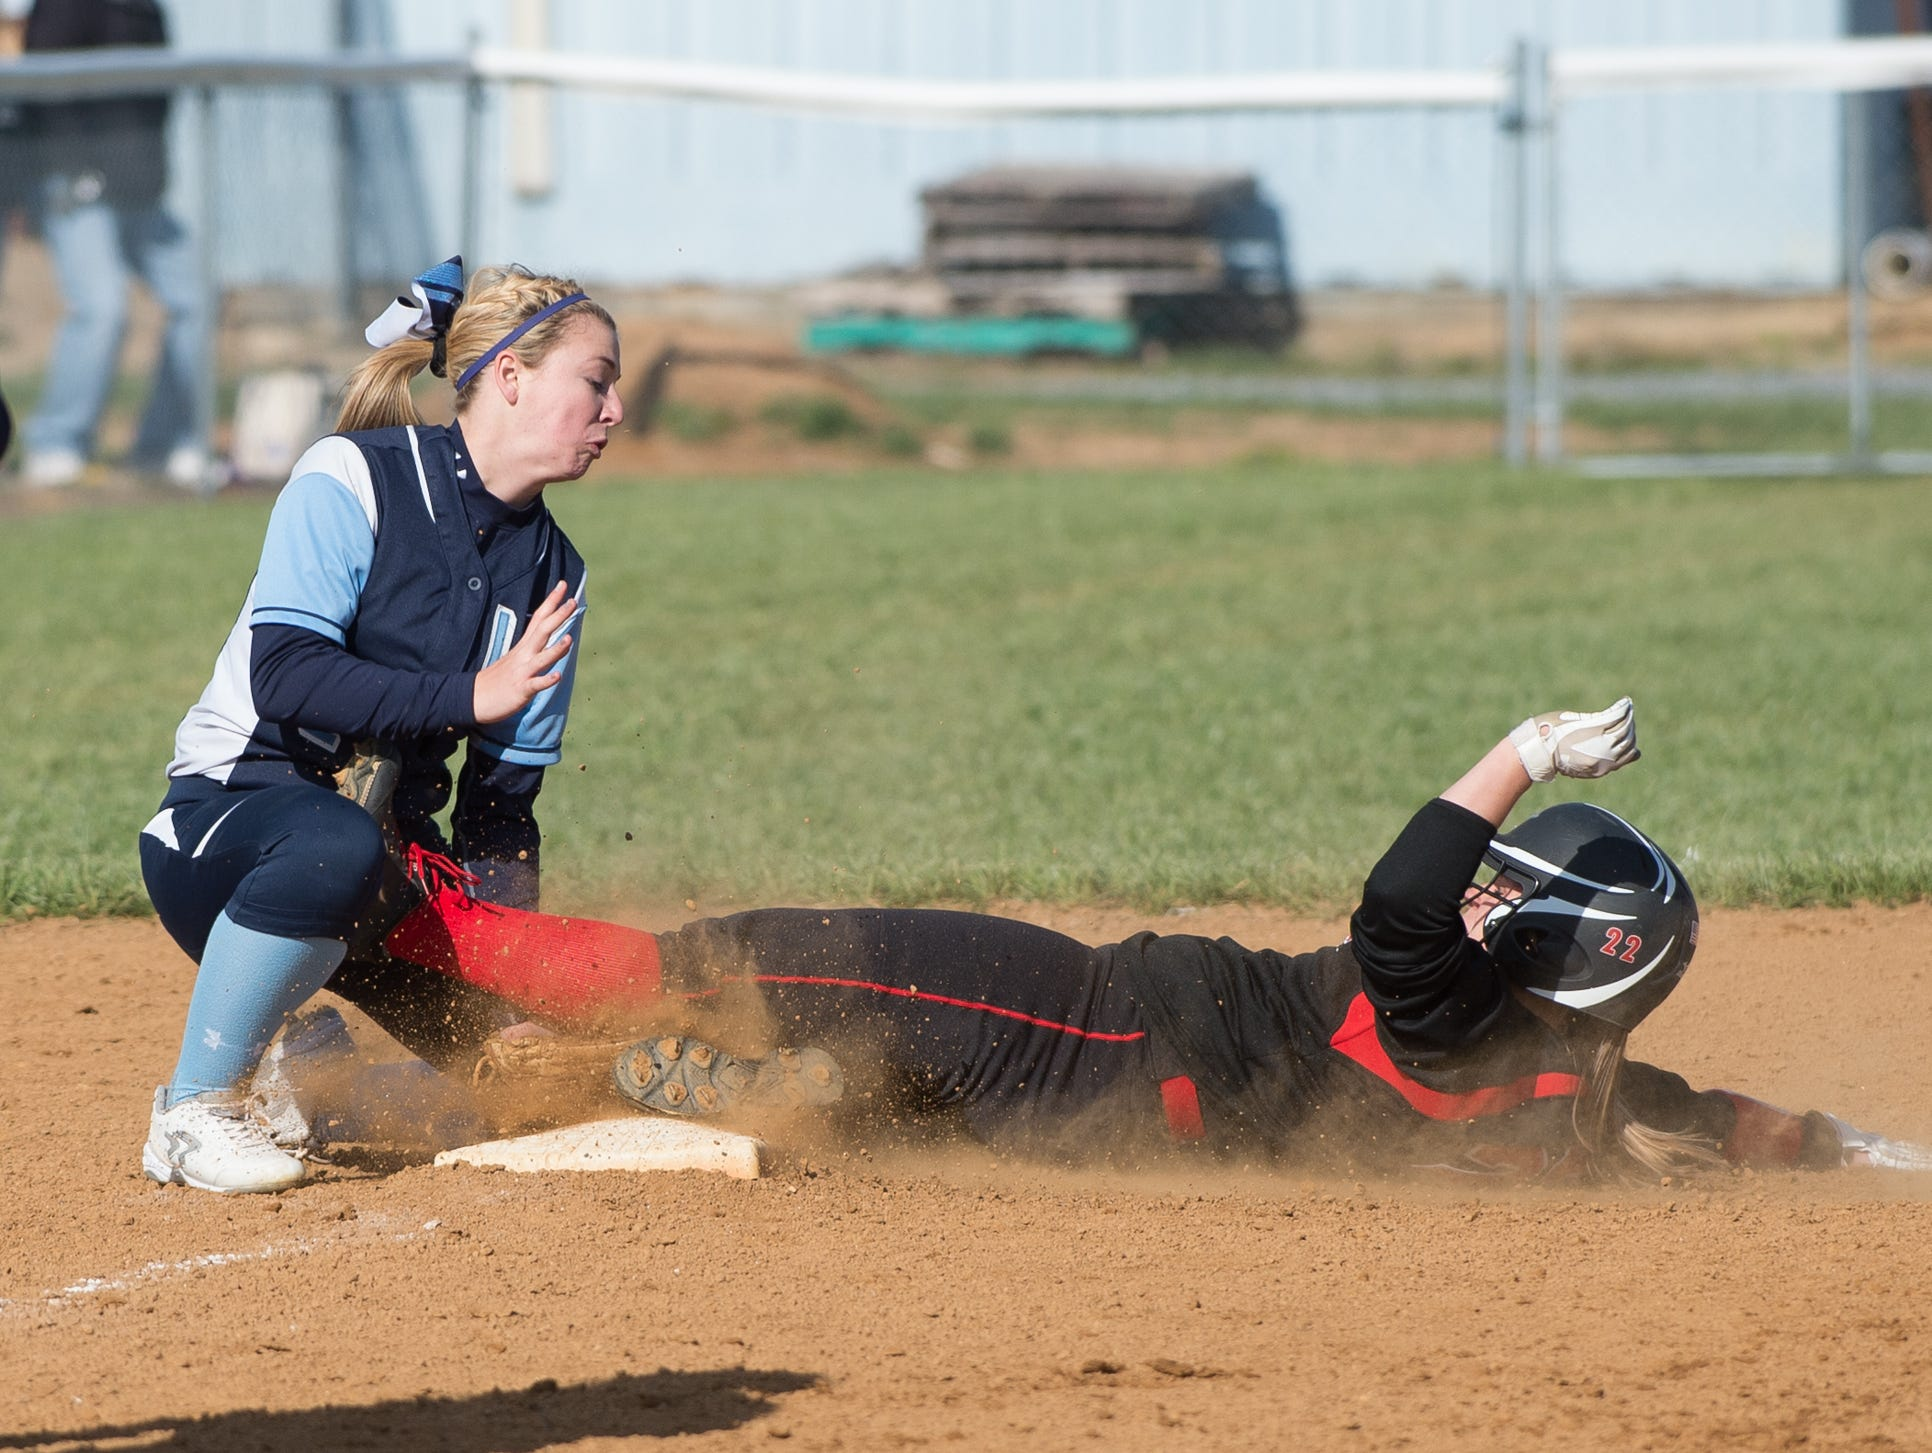 Lake Forest's Faith Garey (2) tags out Red Lion's Kaylee Hazewski (22) at third base.